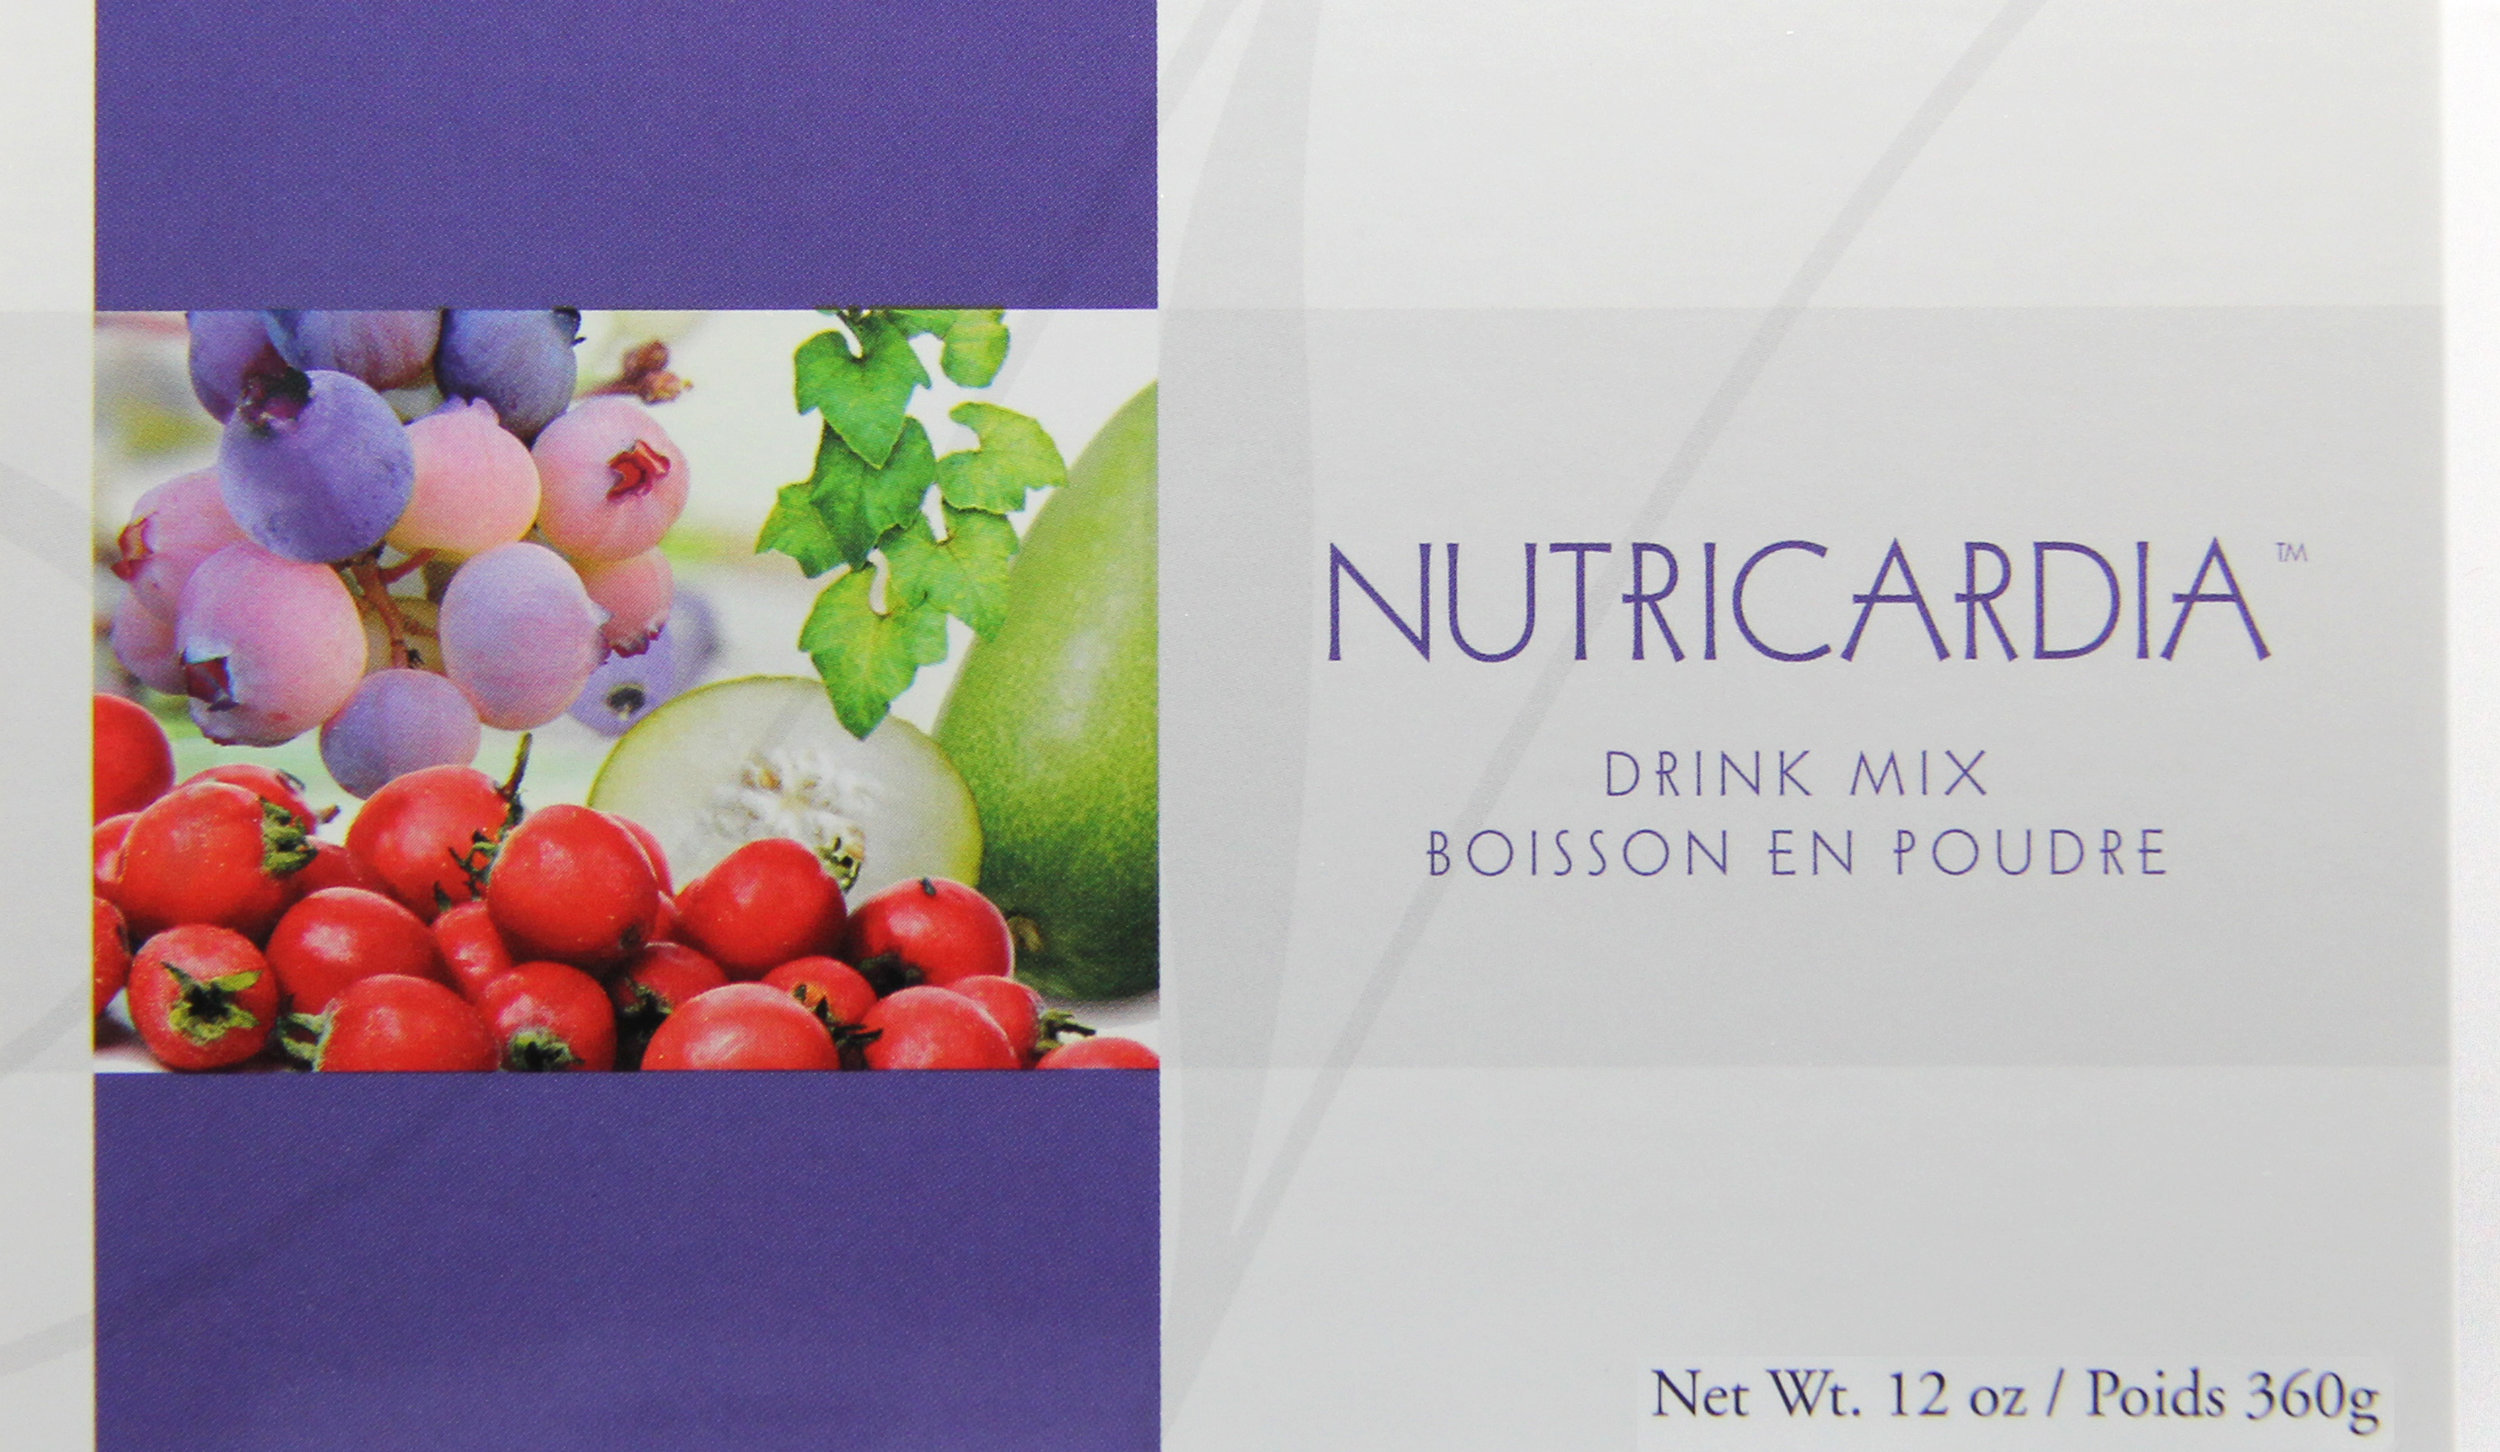 nutricardia - Helps to support cardiovascular health*Featured Ingredients: Chinese Hawthorn Fruit, Blueberry, Plum, Winter Melon, Mulberry, Chrysanthemum